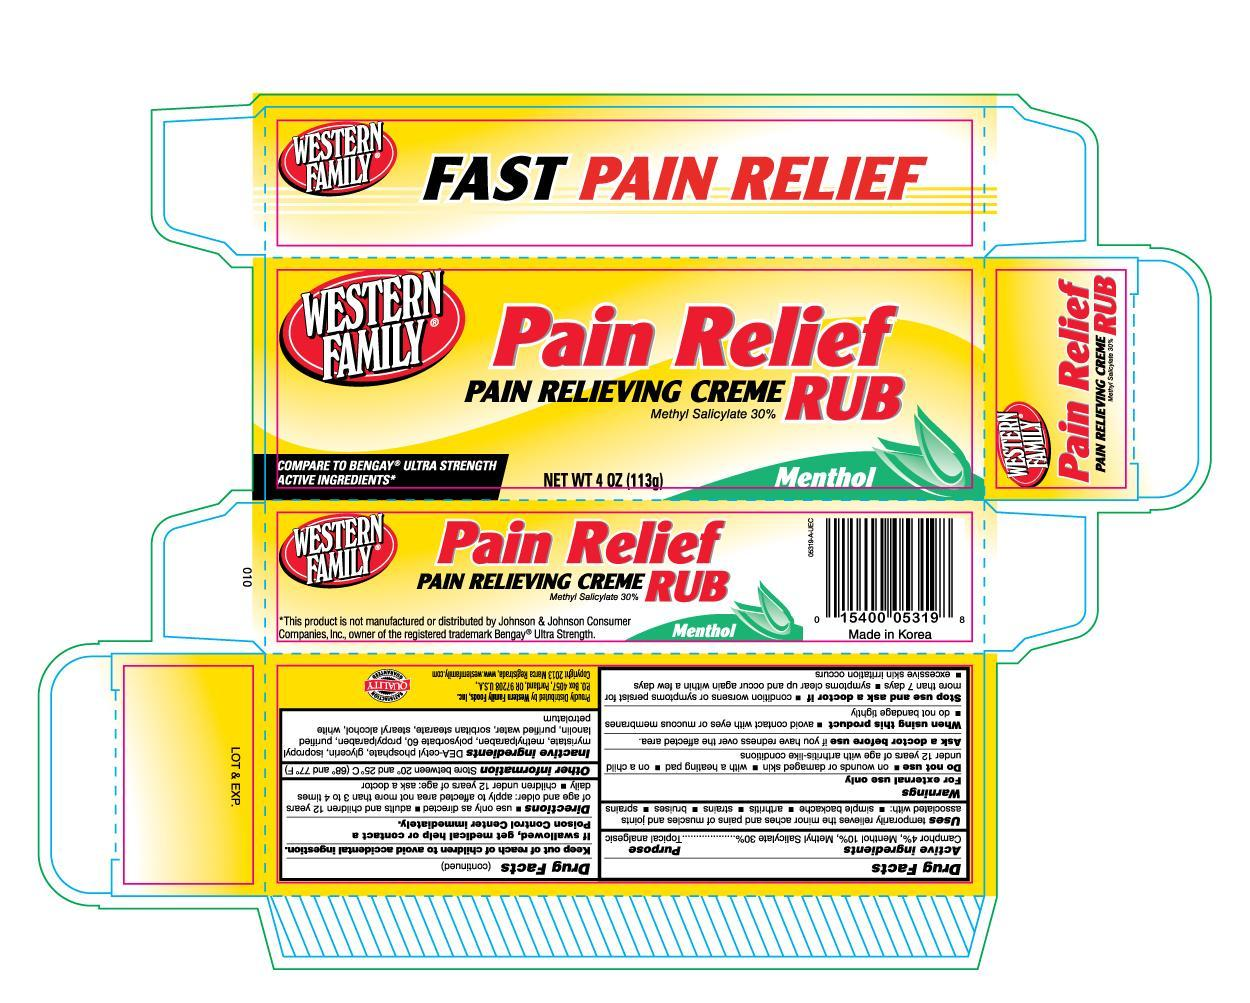 Western Family Pain Relieving (Camphor) Cream [Western Family Food, Inc.]